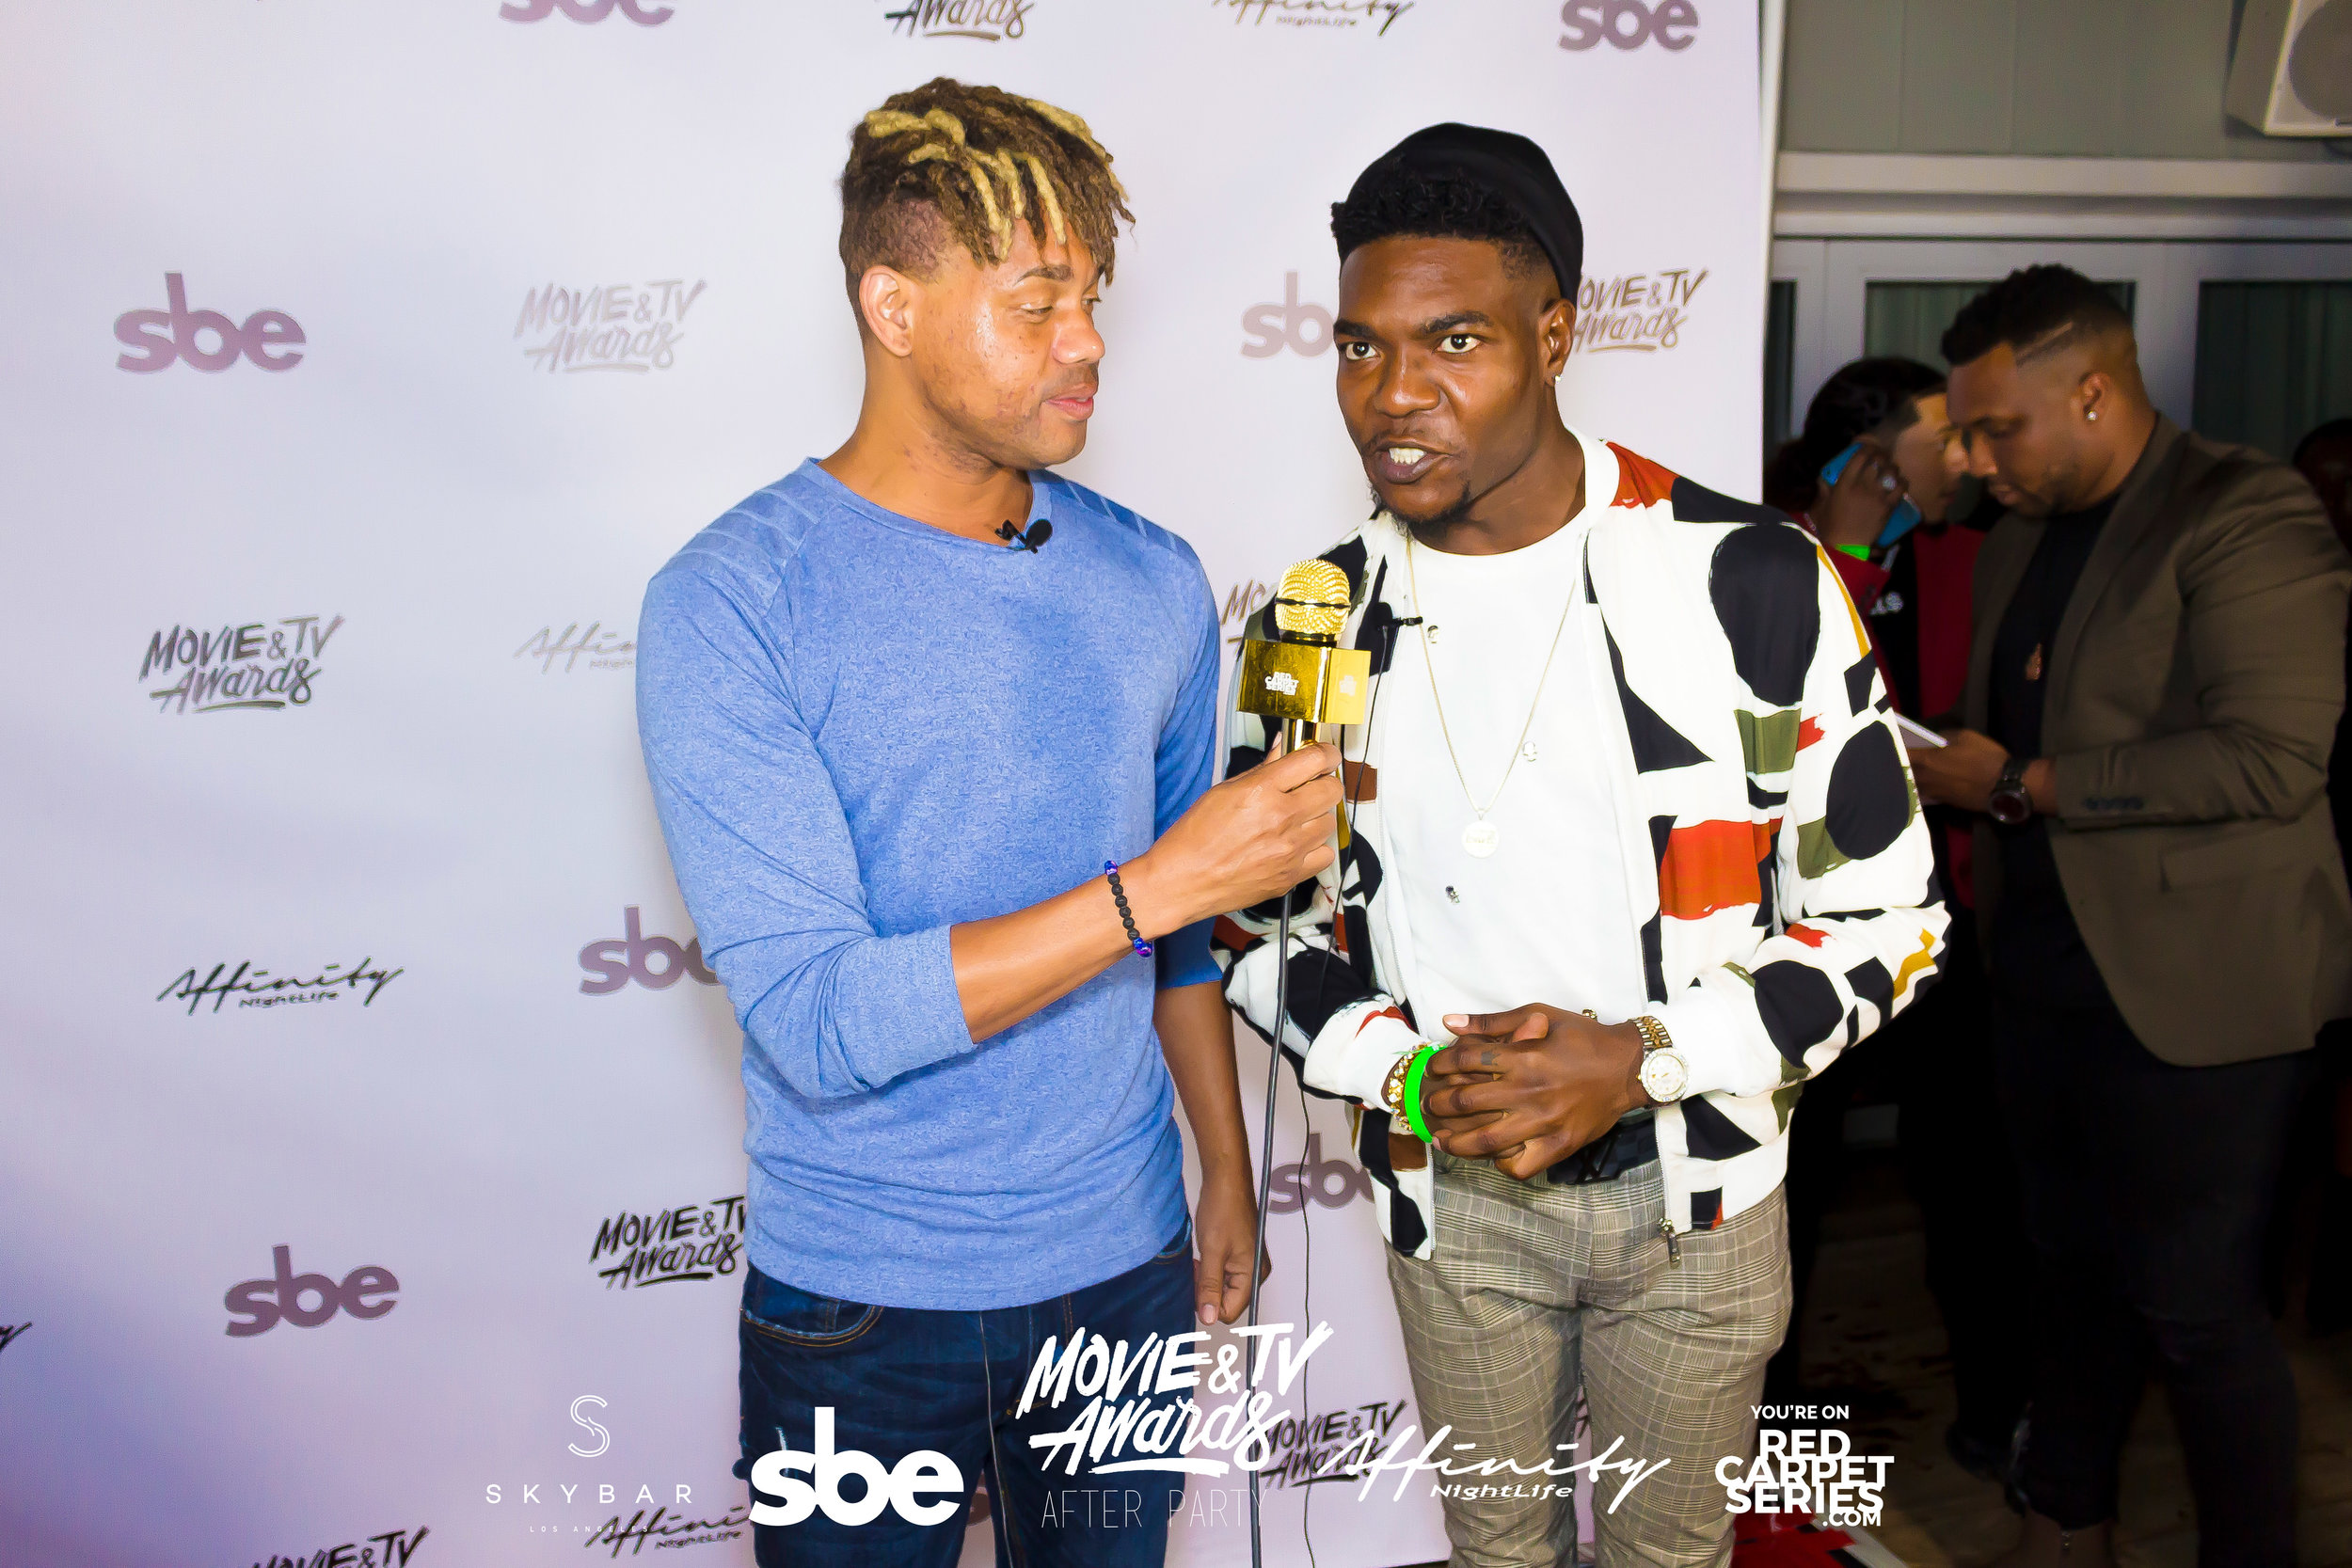 Affinity Nightlife MTV Movie & TV Awards After Party - Skybar at Mondrian - 06-15-19 - Vol. 1_47.jpg